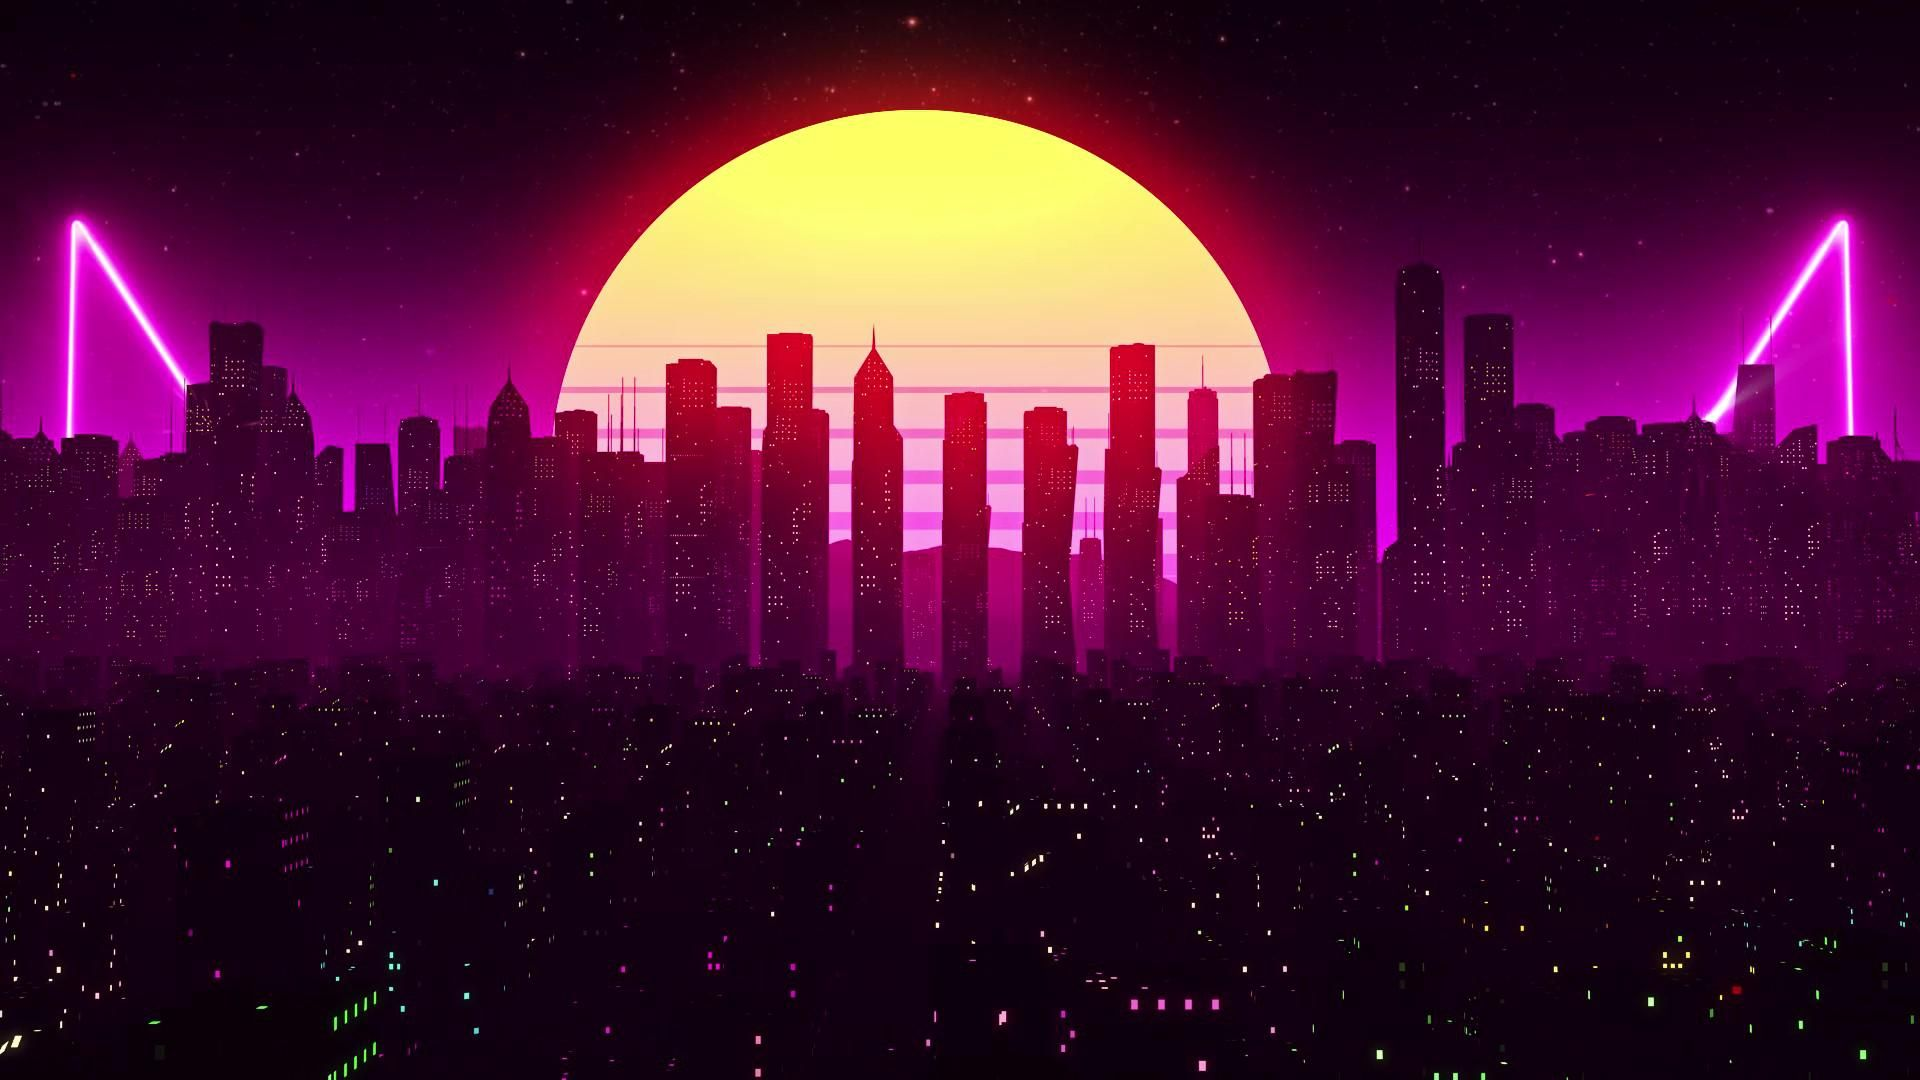 Retrowave City Amp Moon Live Wallpaper 1920 X 1080 Computer Wallpaper Desktop Wallpapers Live Wallpaper For Pc Cool Wallpapers For Laptop